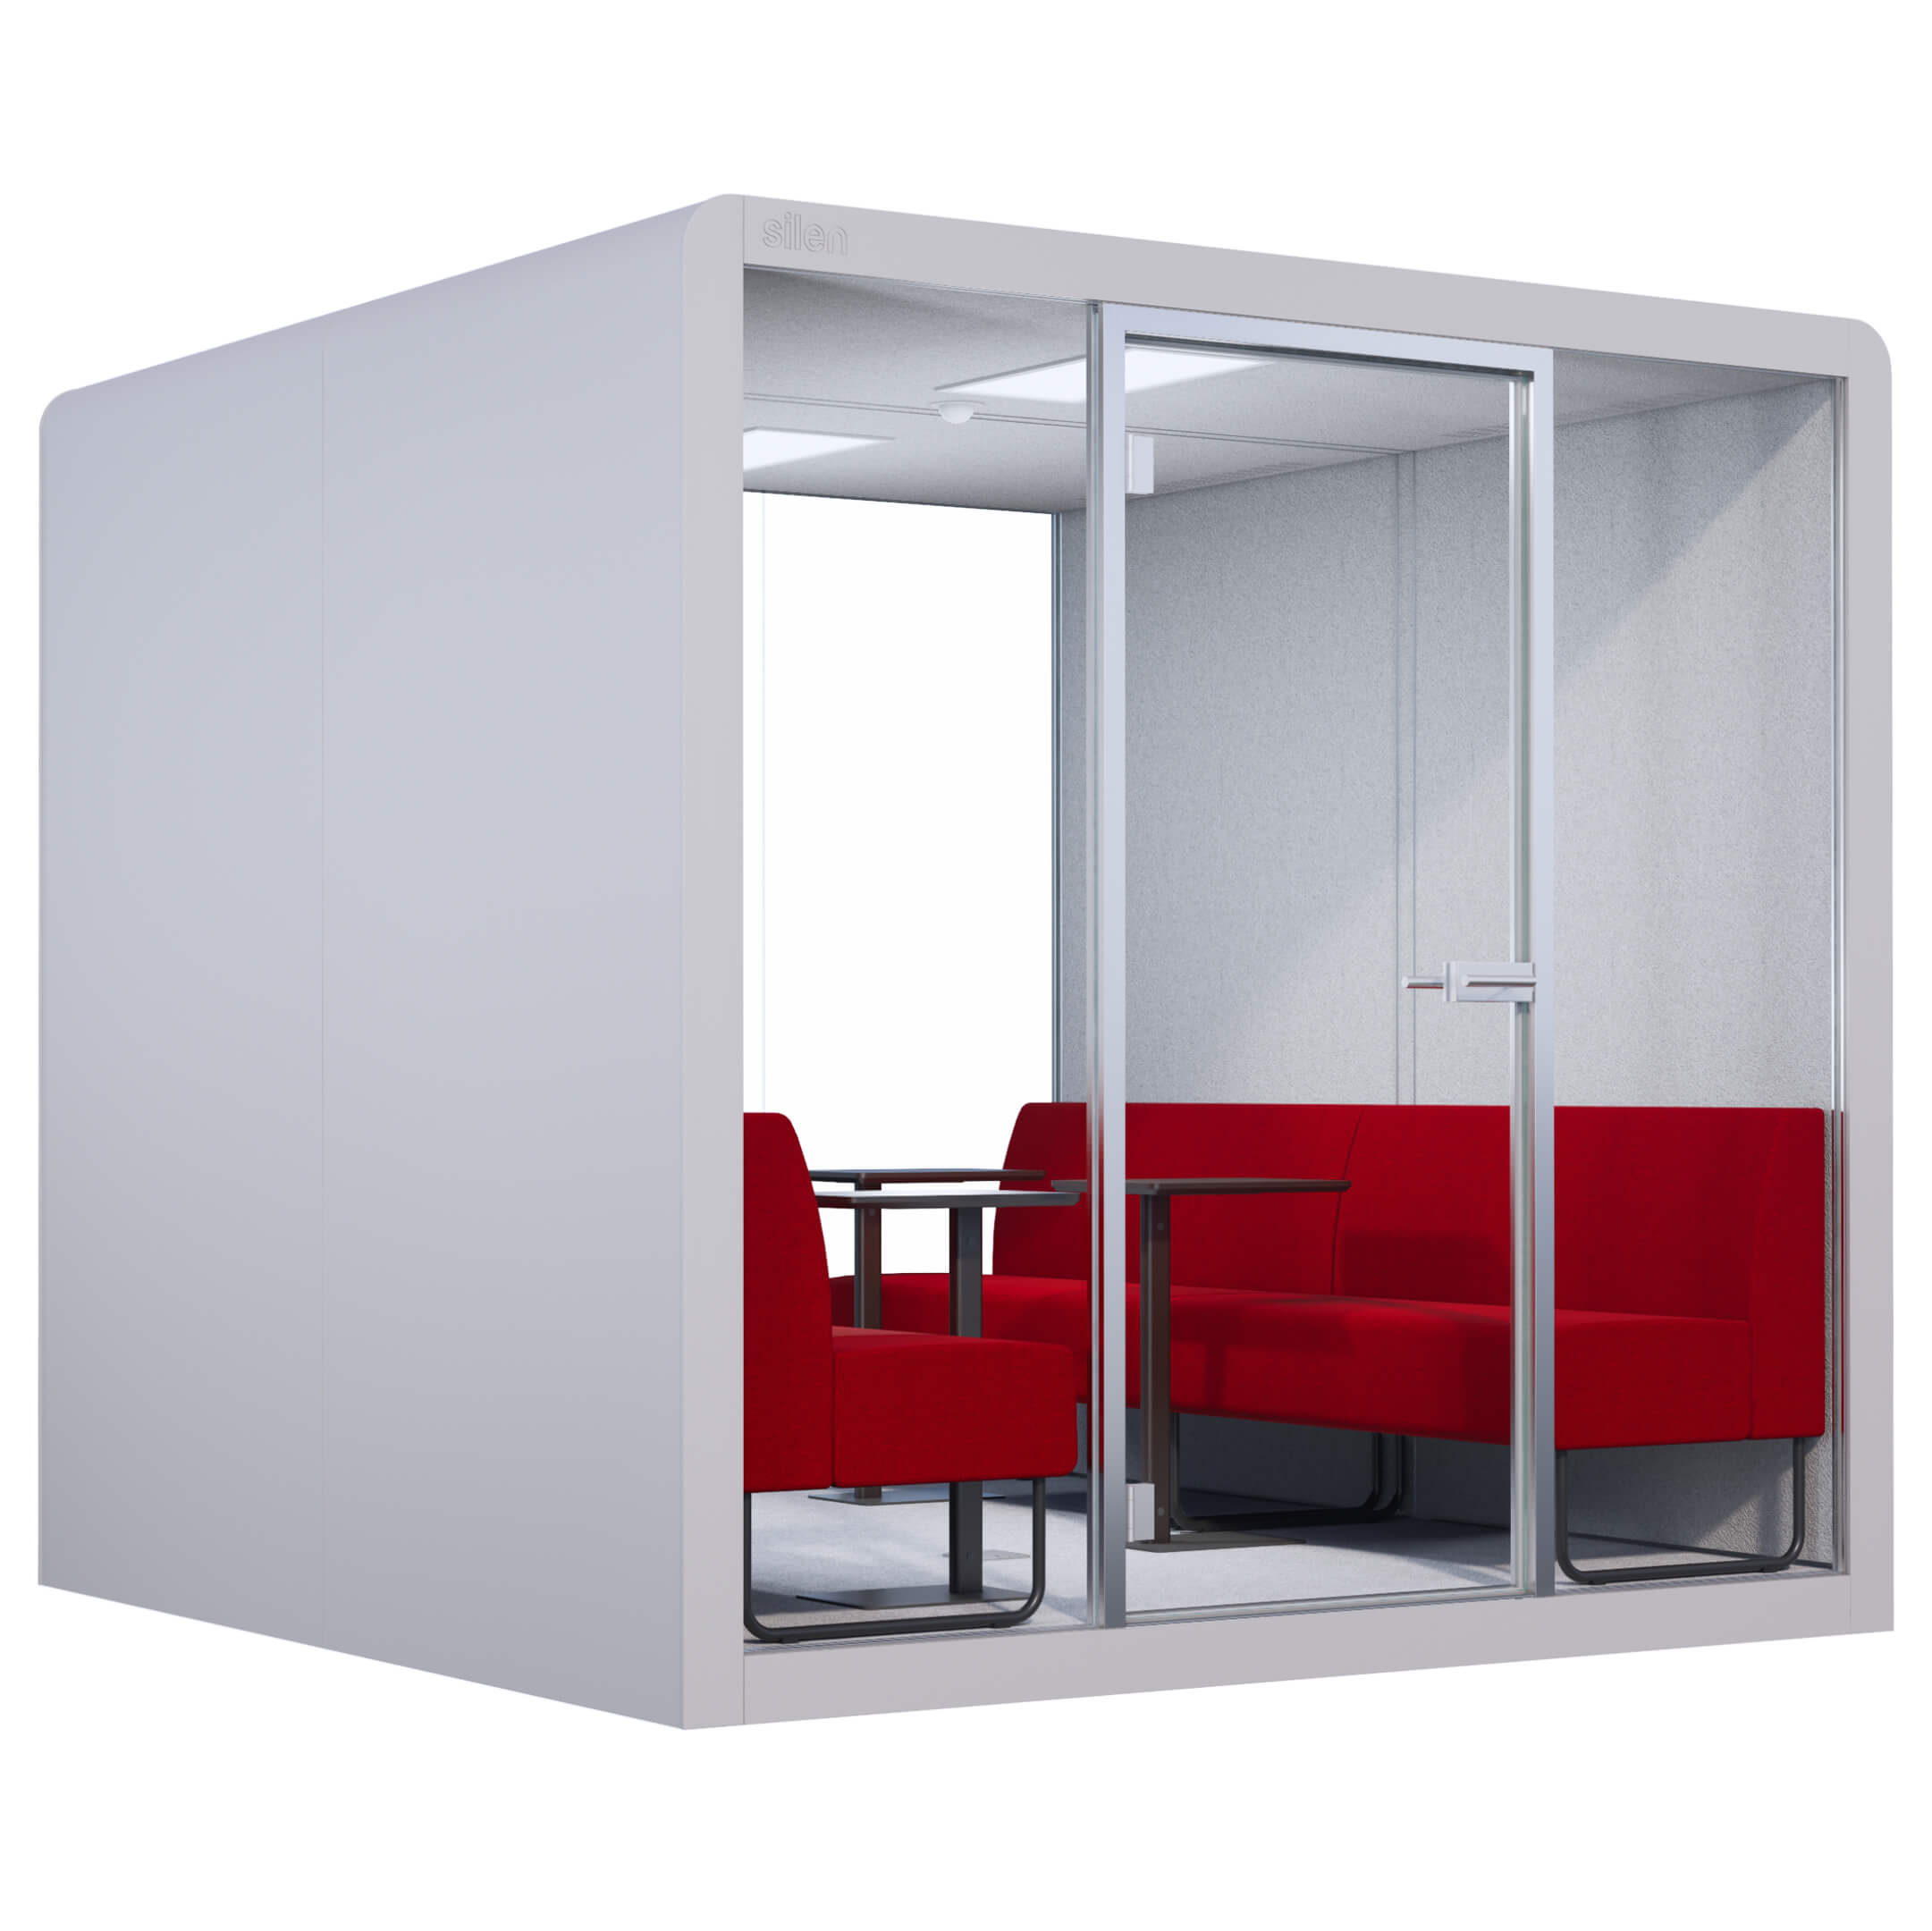 COTTON SPACE 4 - RED MELANGE BENCHES